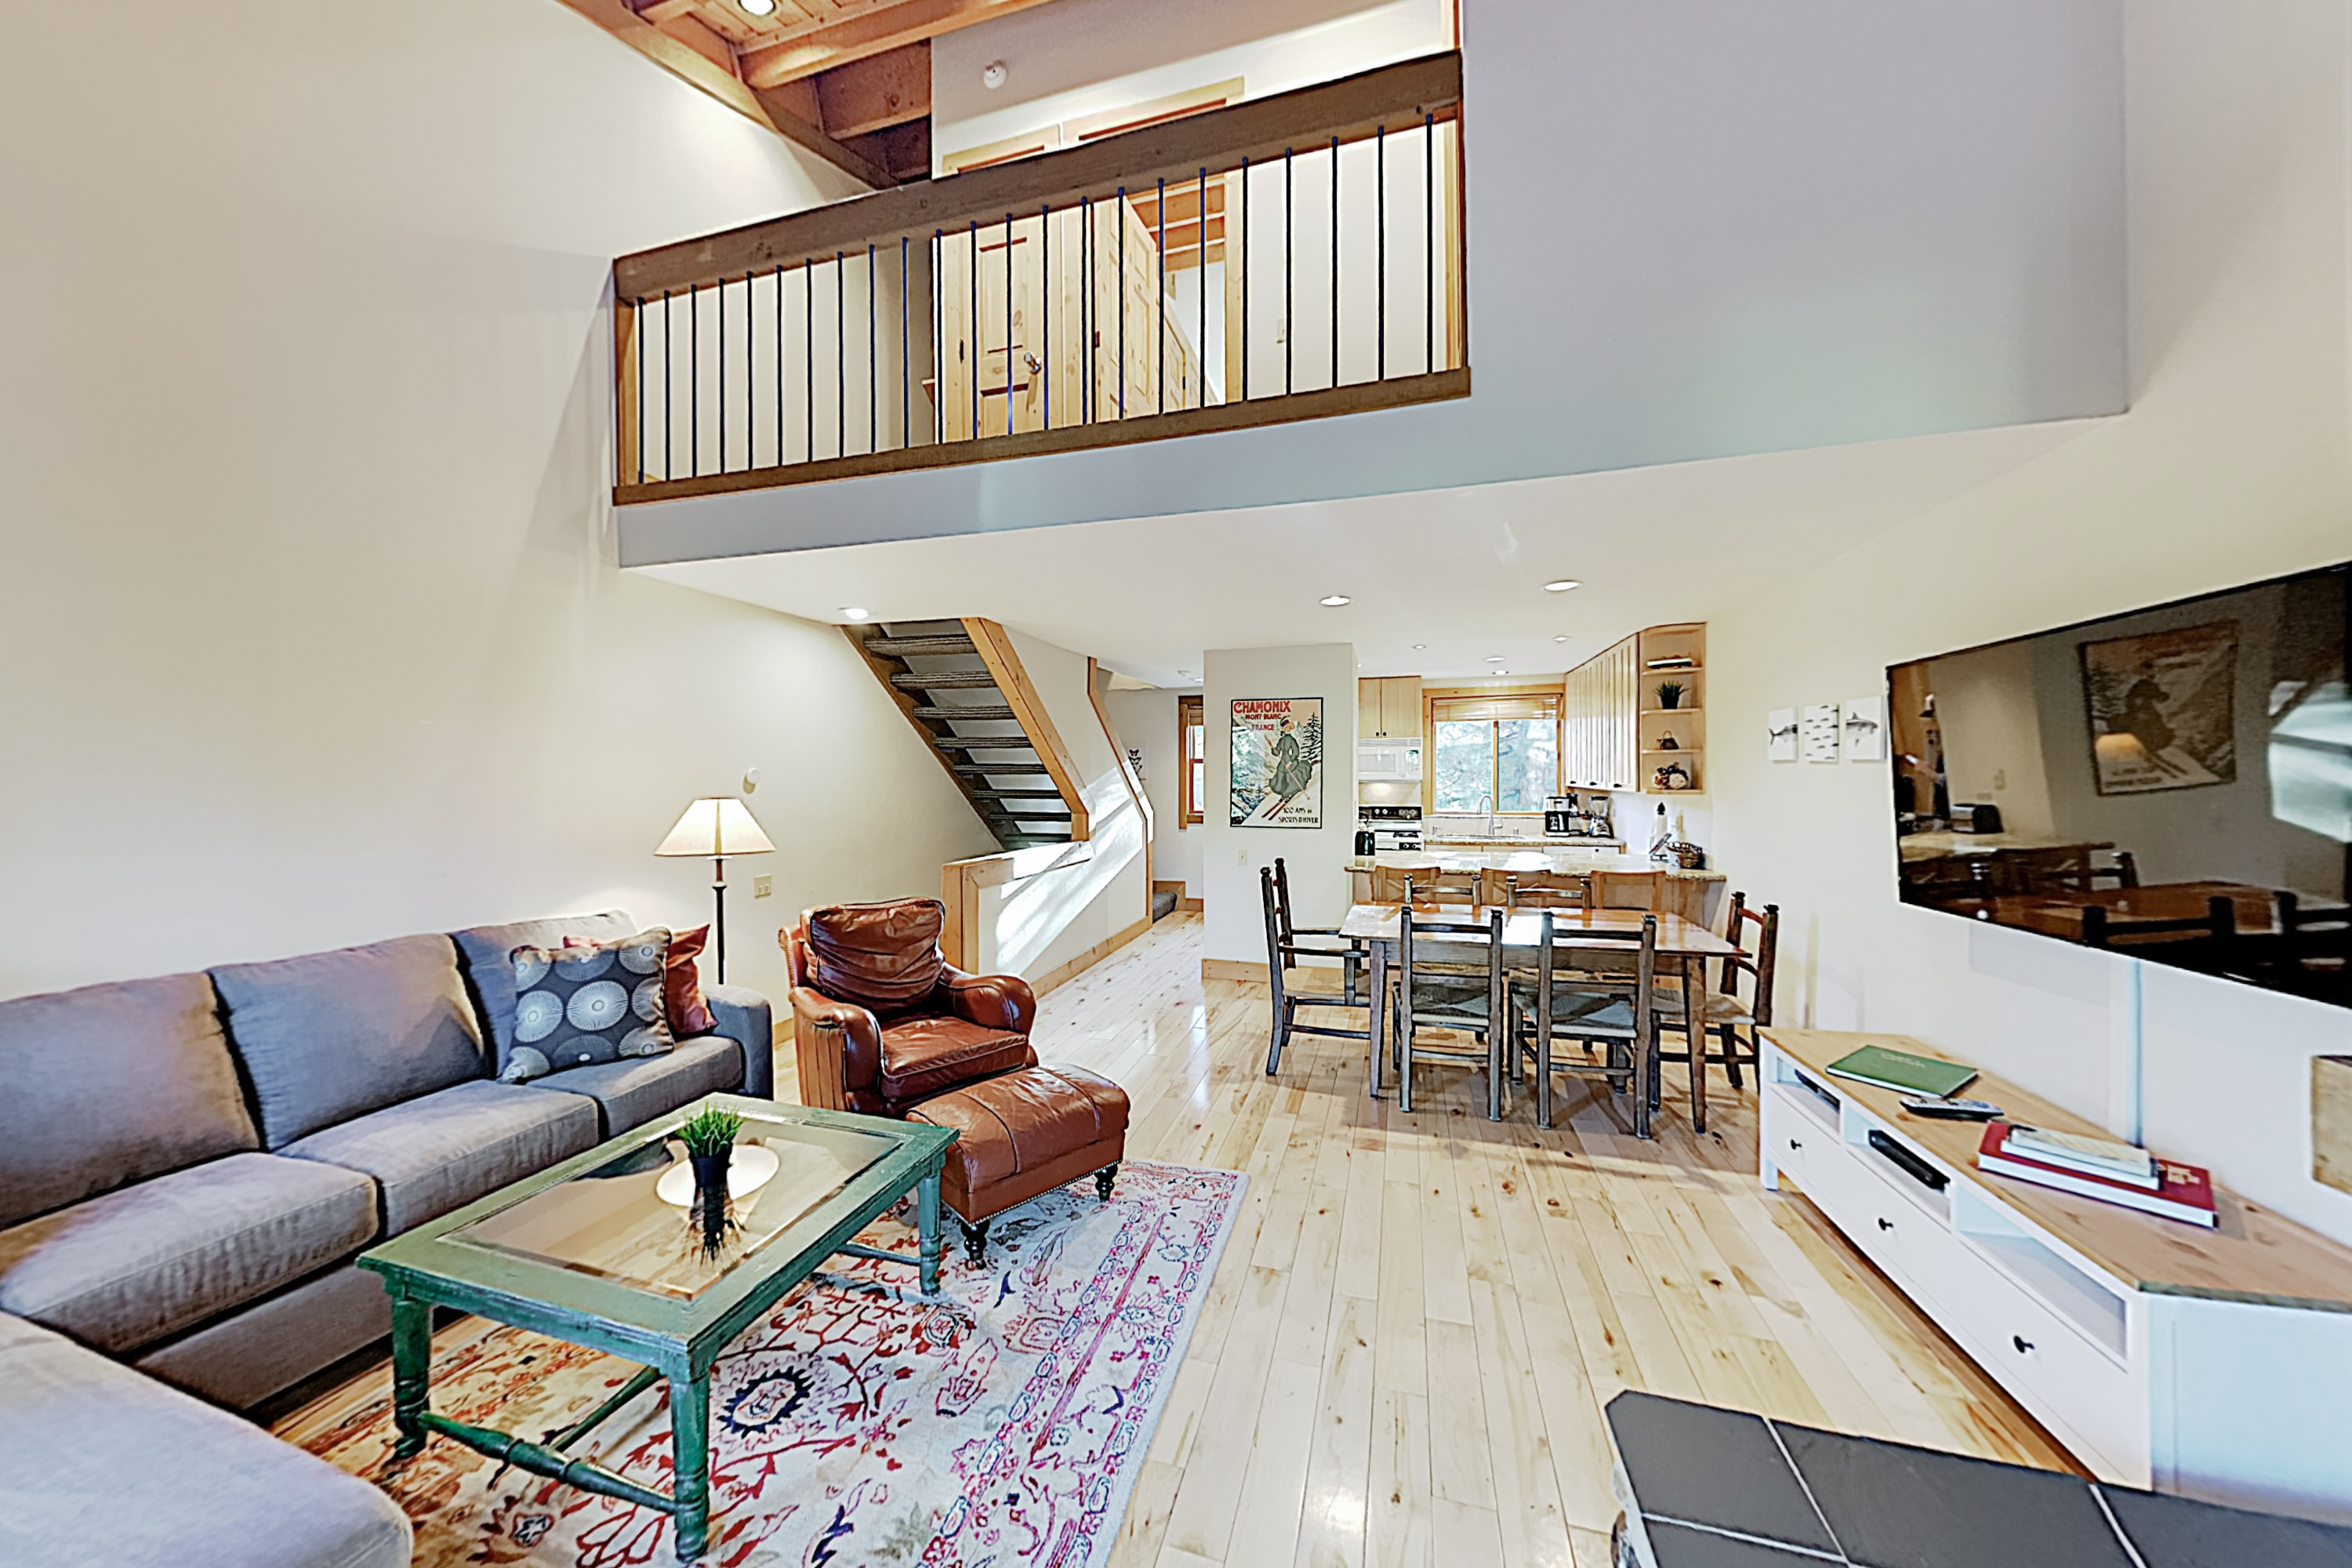 Truckee CA Vacation Rental Welcome! This Northstar